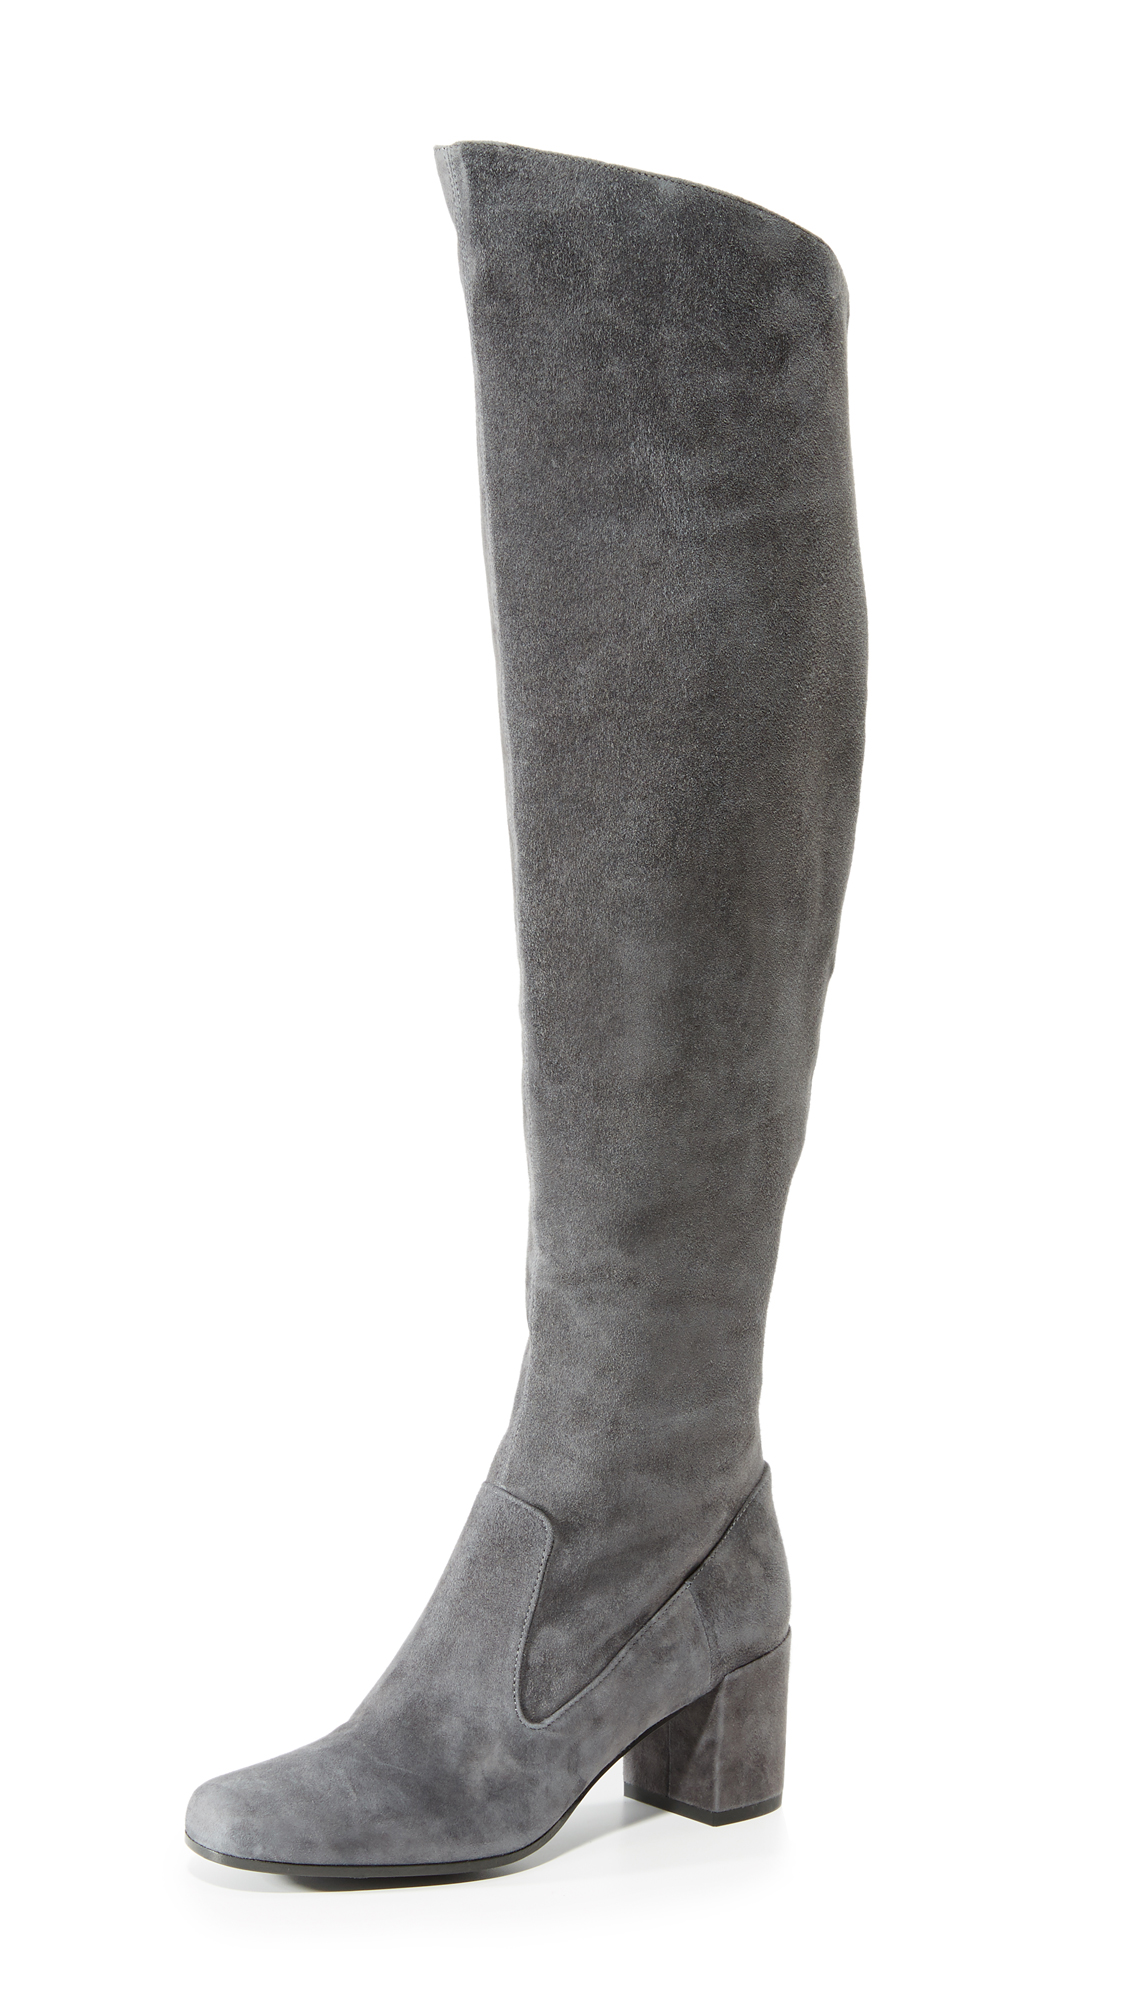 Vince Blythe Over The Knee Boots - Pewter